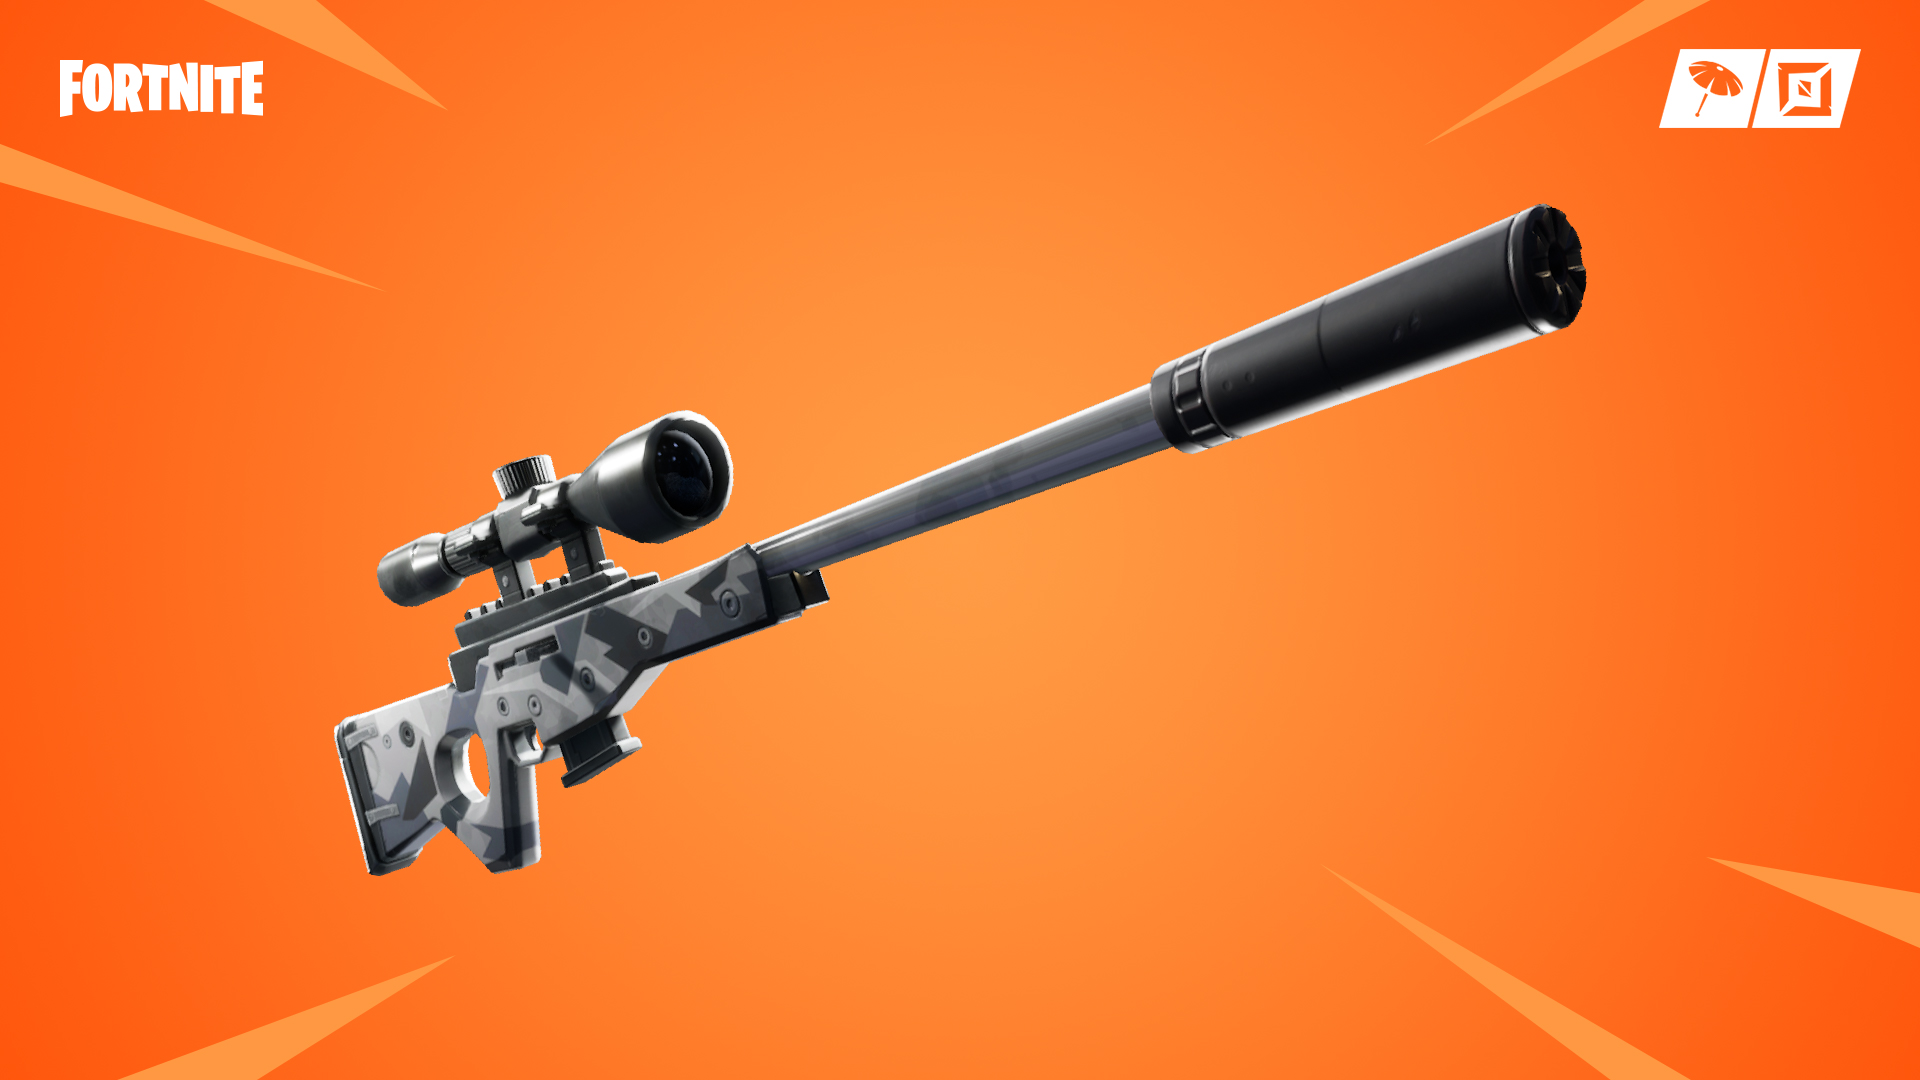 Fortnite V7 10 Update Adds Suppressed Sniper Rifle